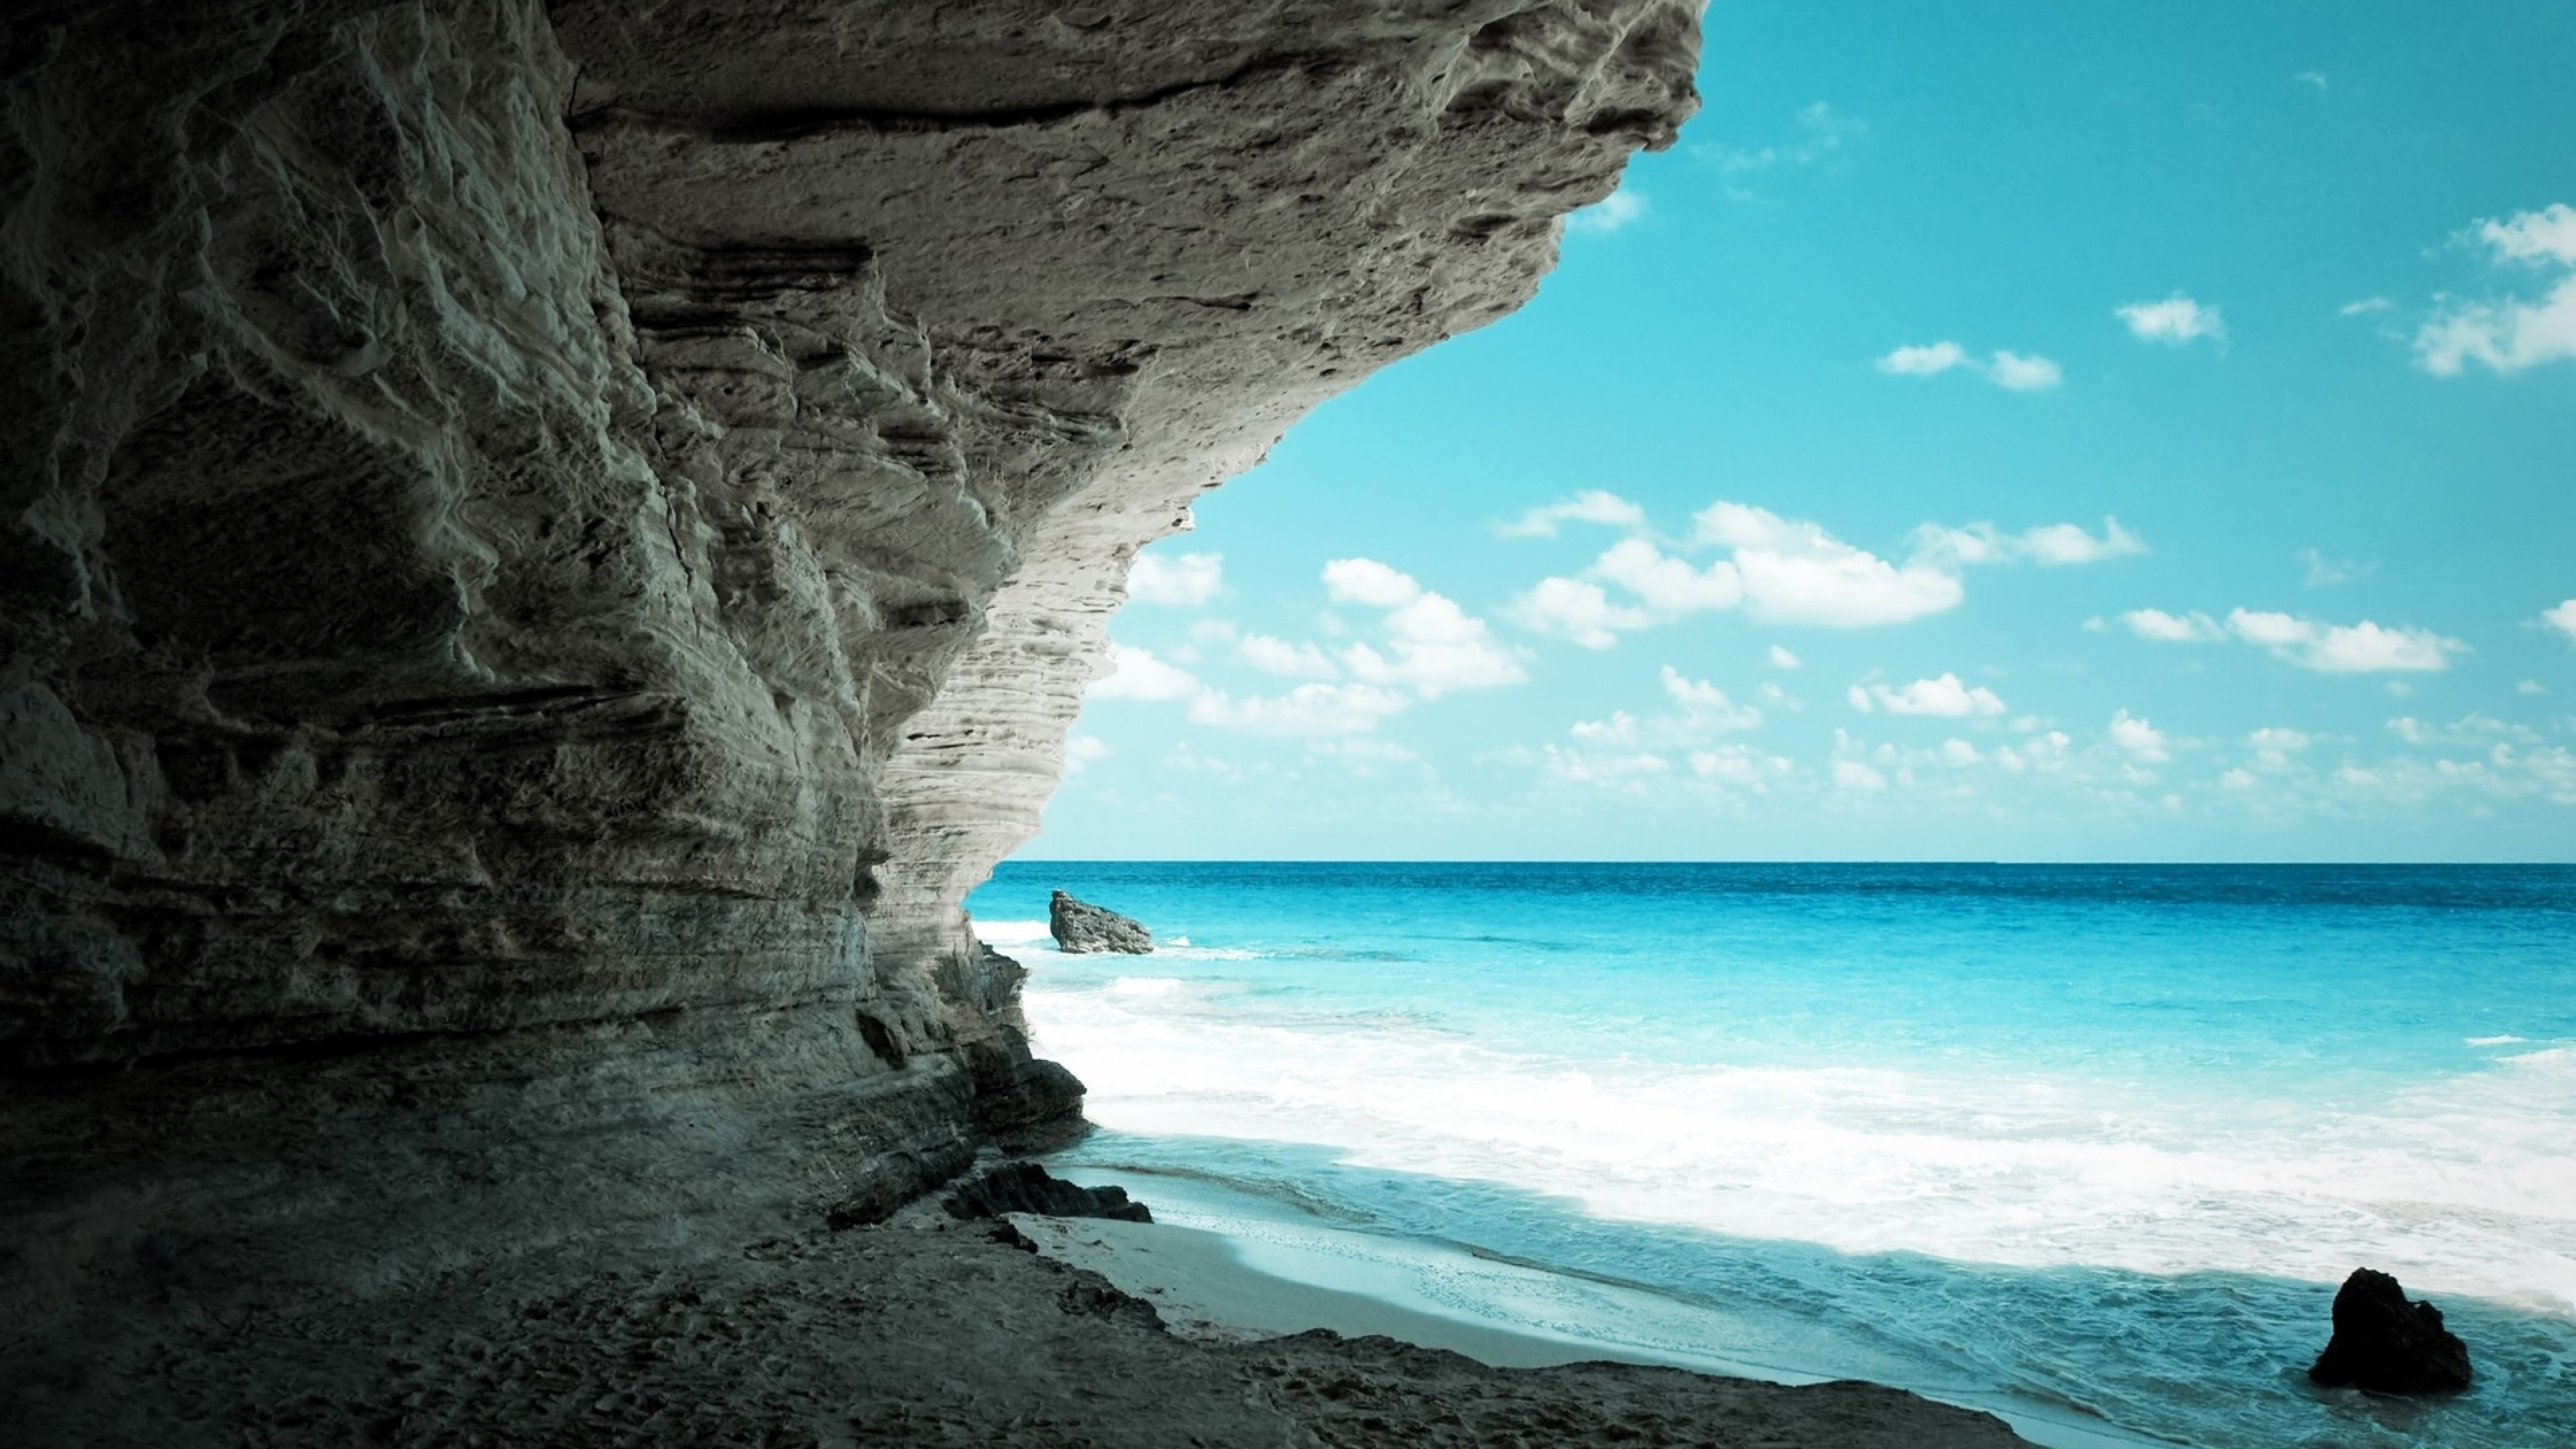 Sea in the cave